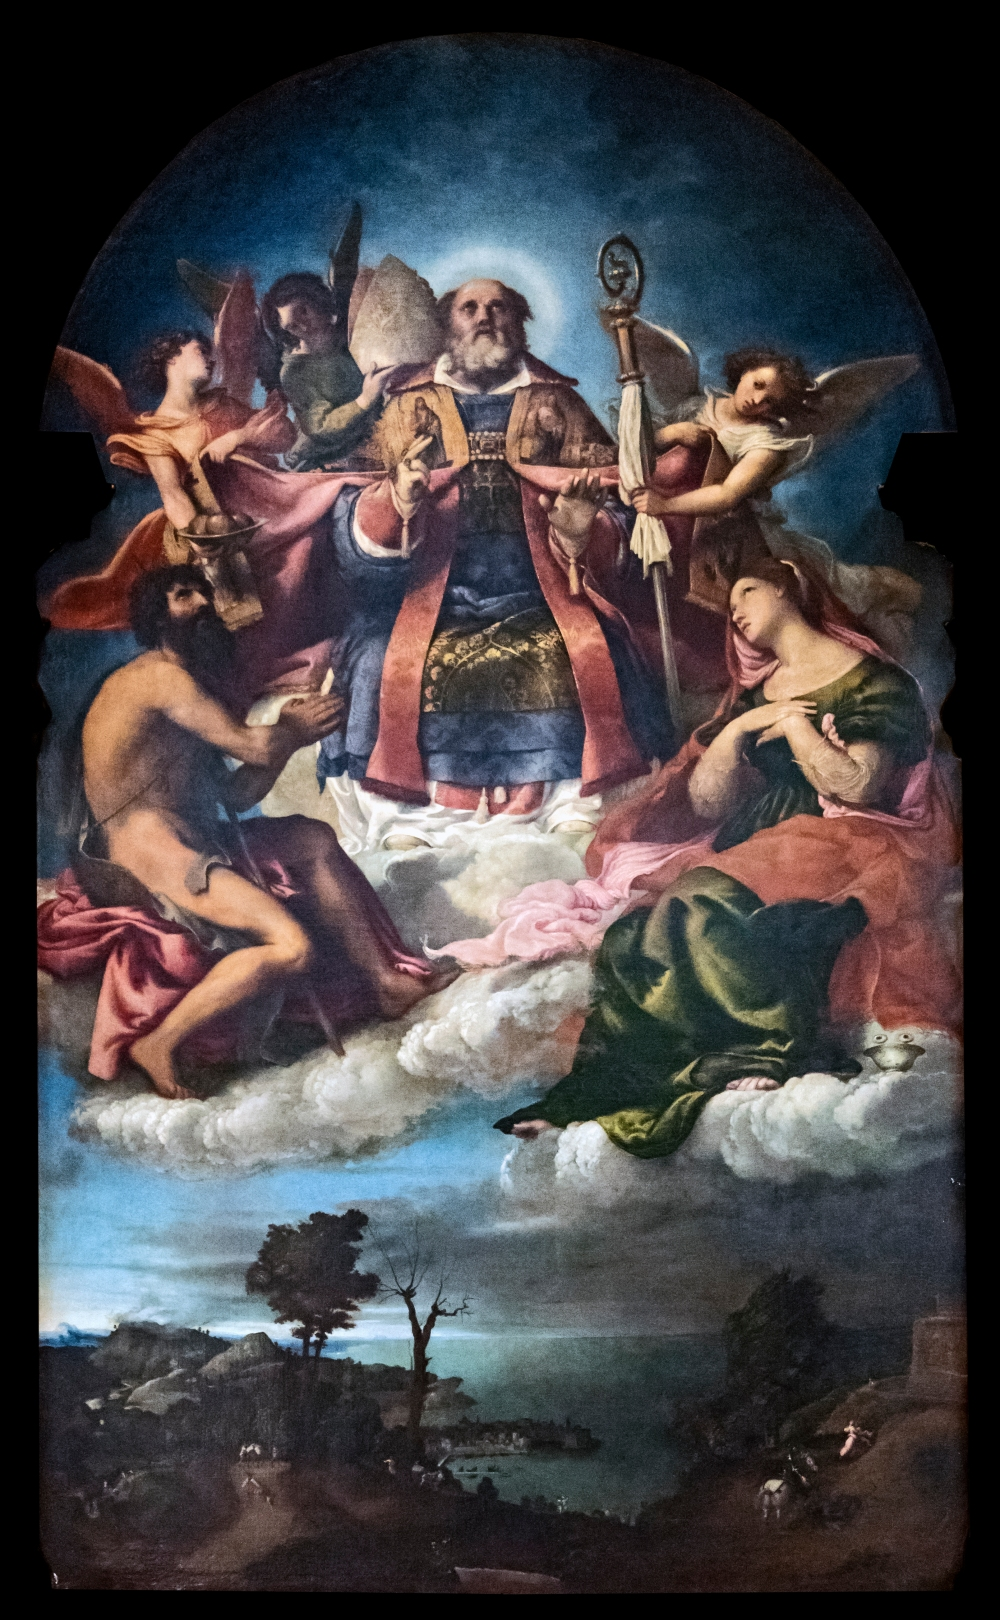 santa_maria_dei_carmini_28venice29_-_saint_nicholas_in_glory_with_saints_john_the_baptist_and_lucy_by_lorenzo_lotto